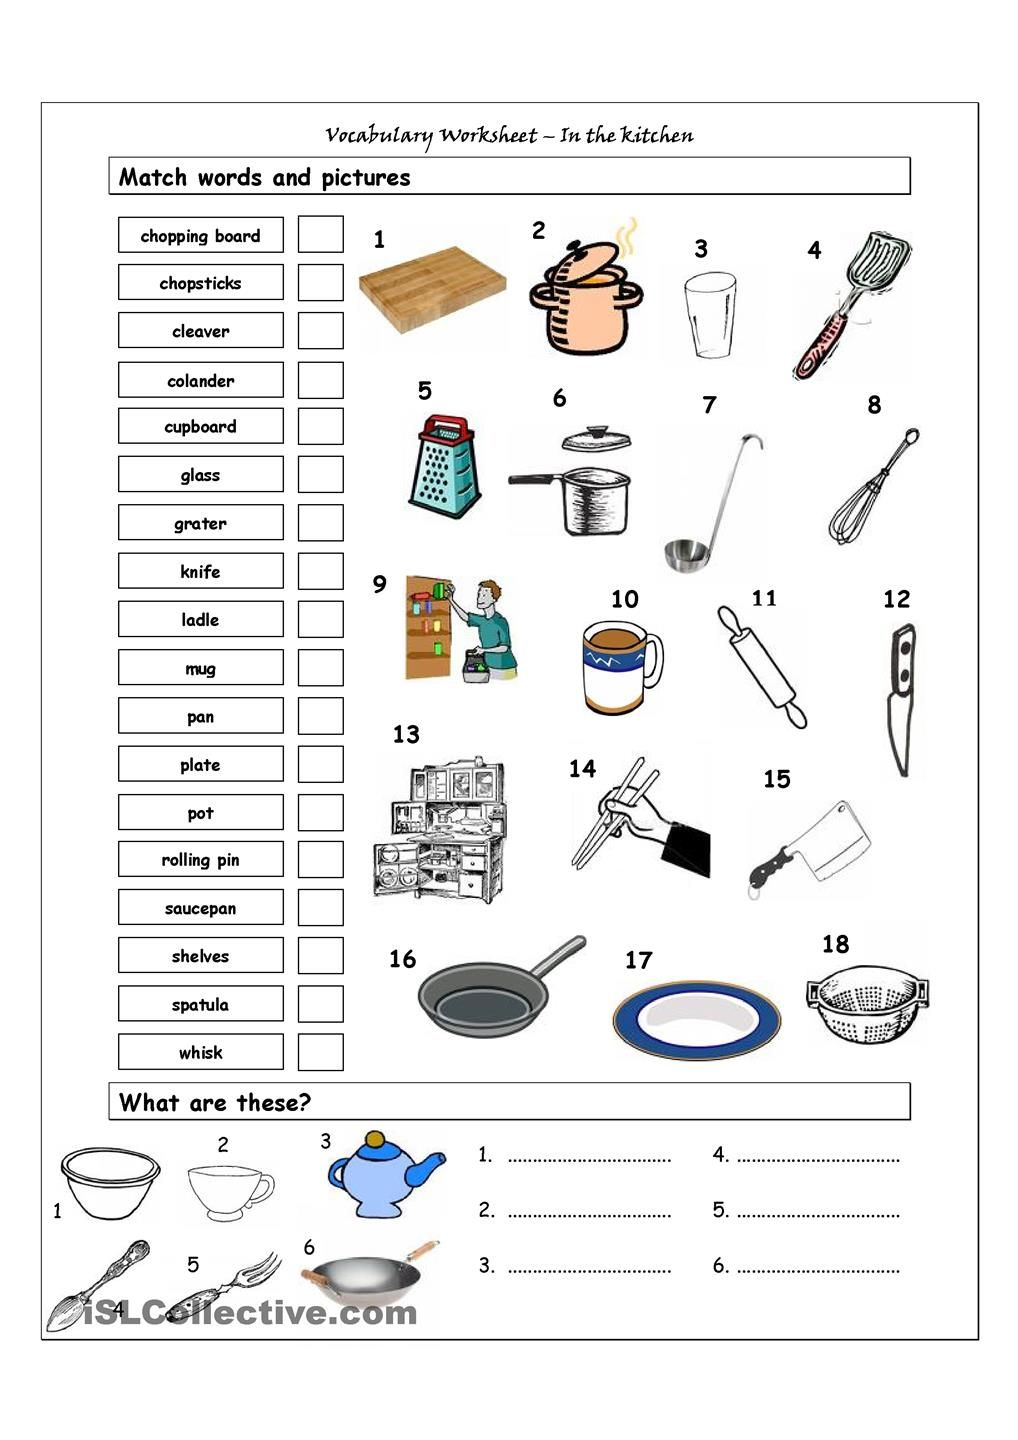 Kitchen design gallery kitchen vocabulary list - Vocabulary Worksheet Containing Kitchen Vocabulary It Has Two Sections Match Words And Pictures Matching Exercise And Write The Words Creative